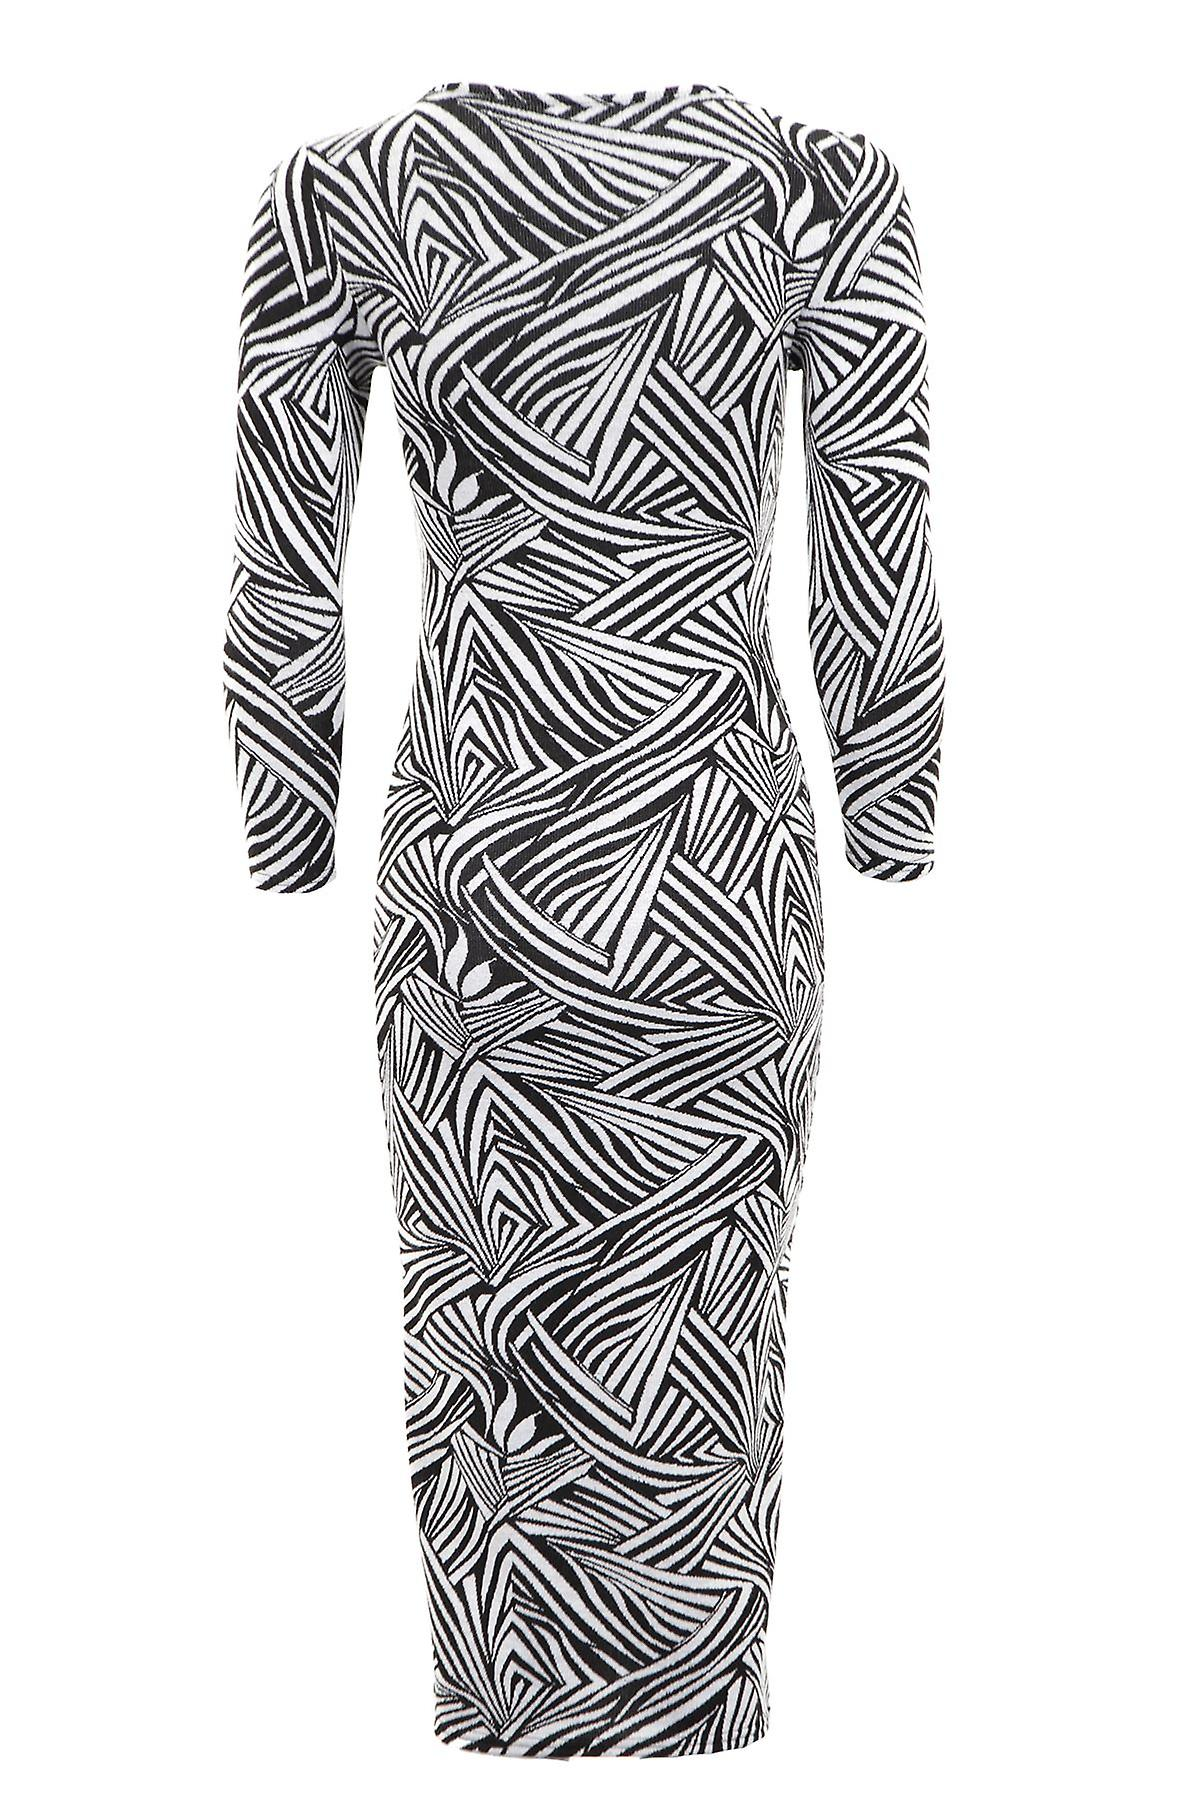 New Ladies Long Sleeve Jacquard Aztec Leaf Print Women's Maxi Dress